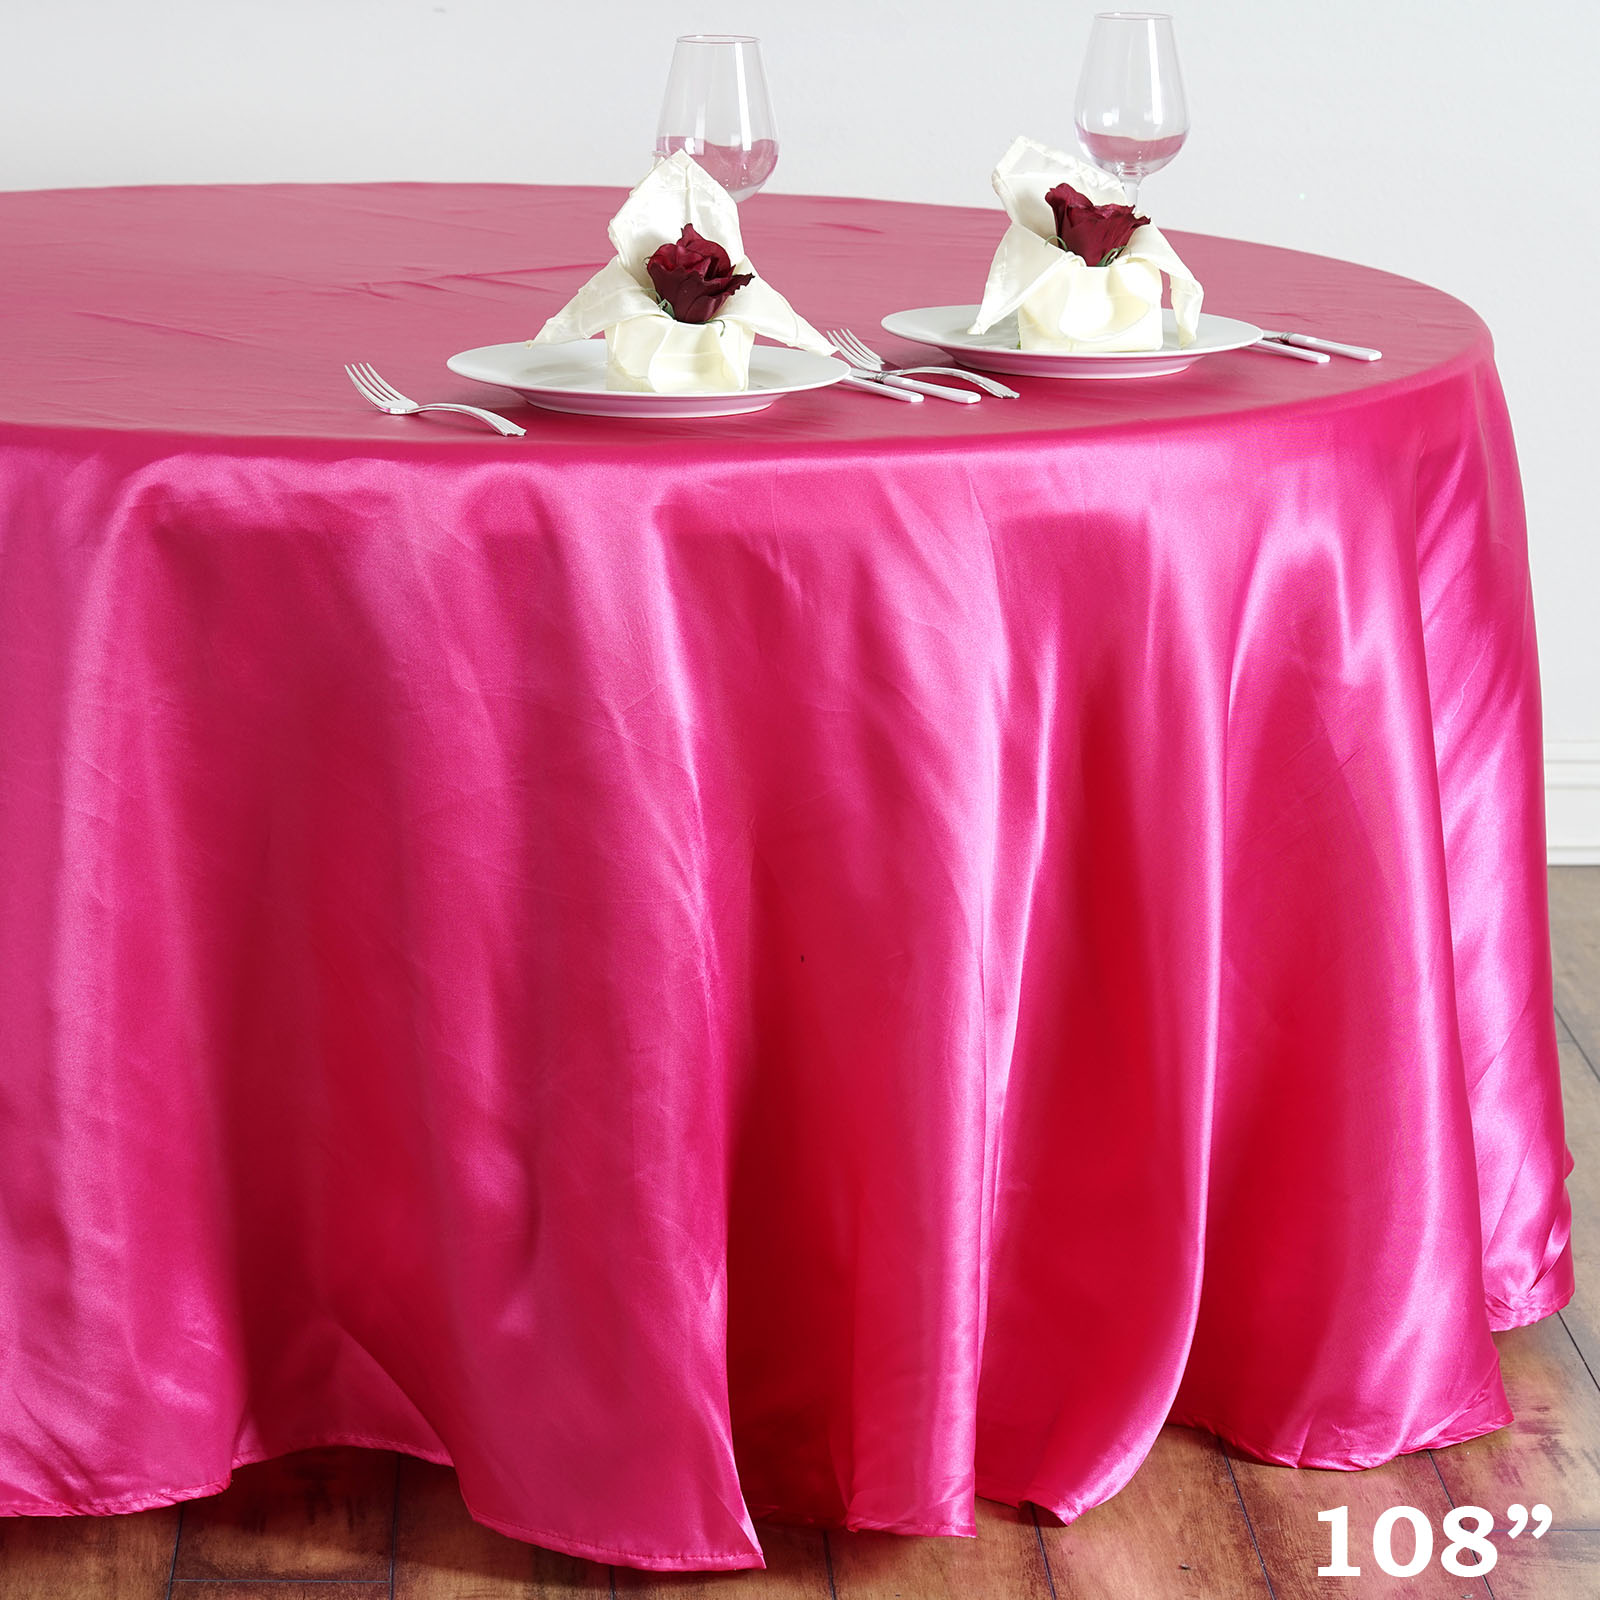 "Efavormart 108"" Round Satin Tablecloth for Kitchen Dining Catering Wedding Birthday Party Decorations Events"